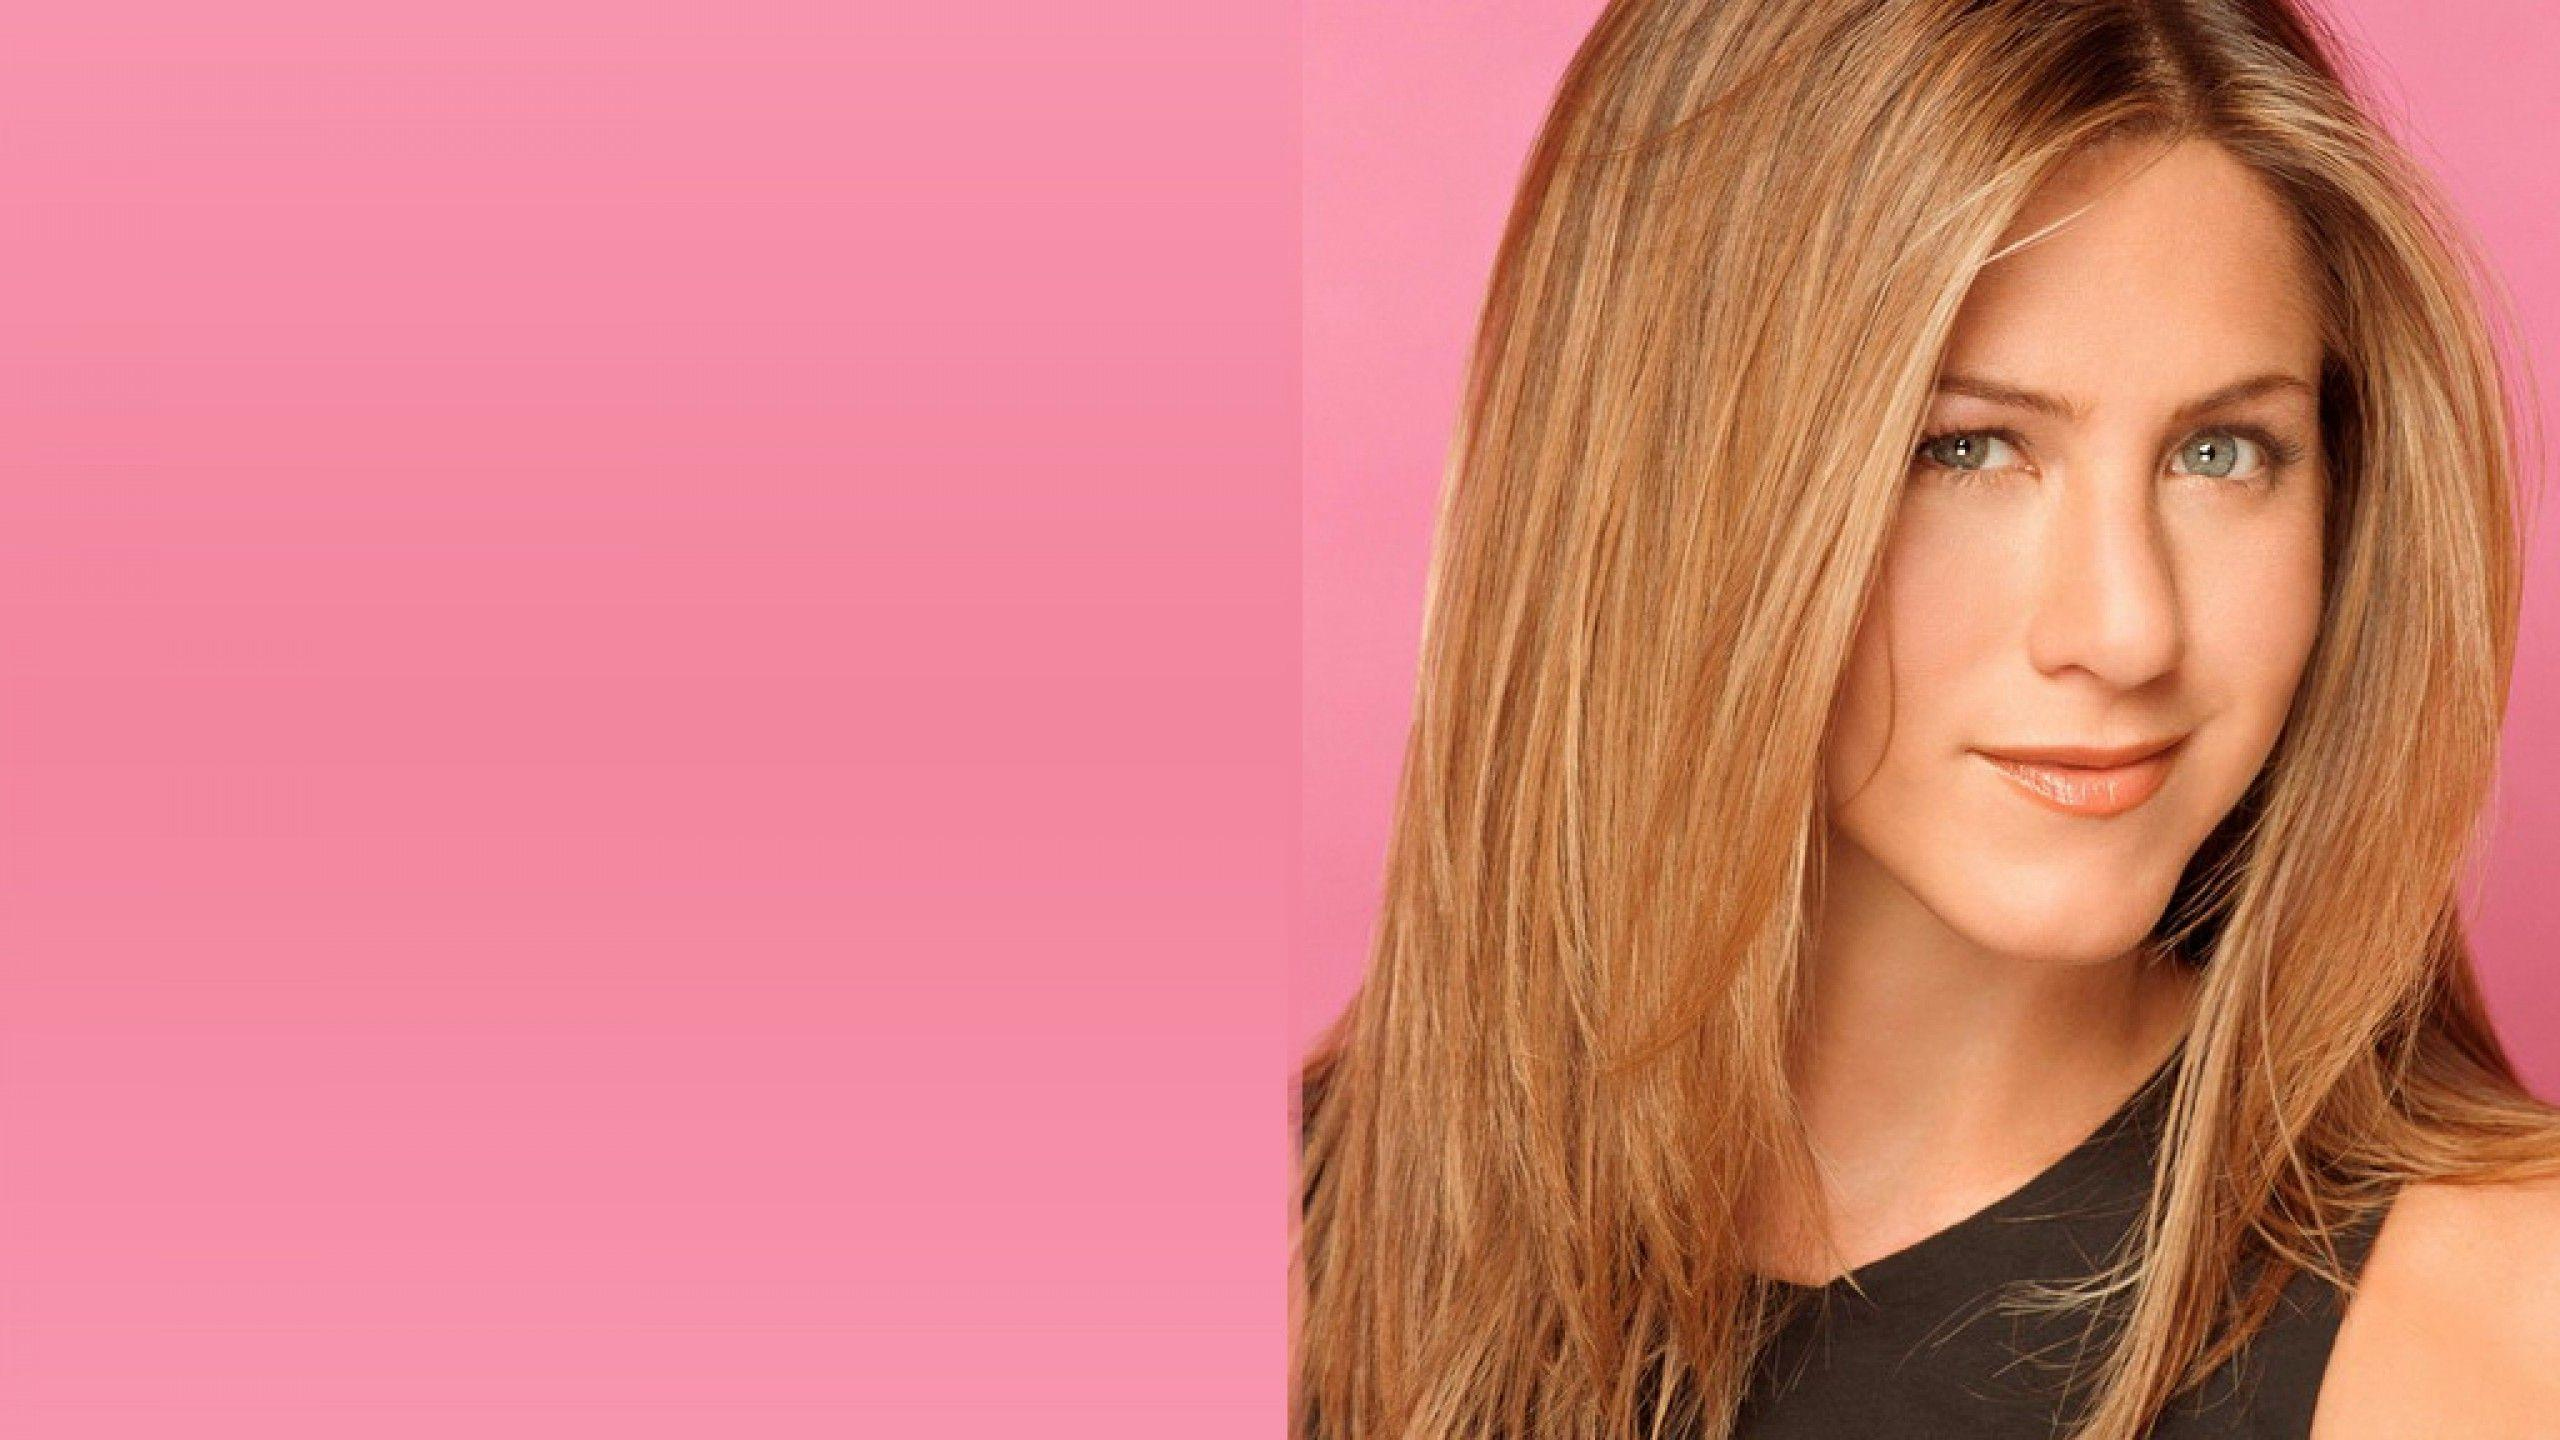 Jennifer Aniston HD Wallpapers for desktop download